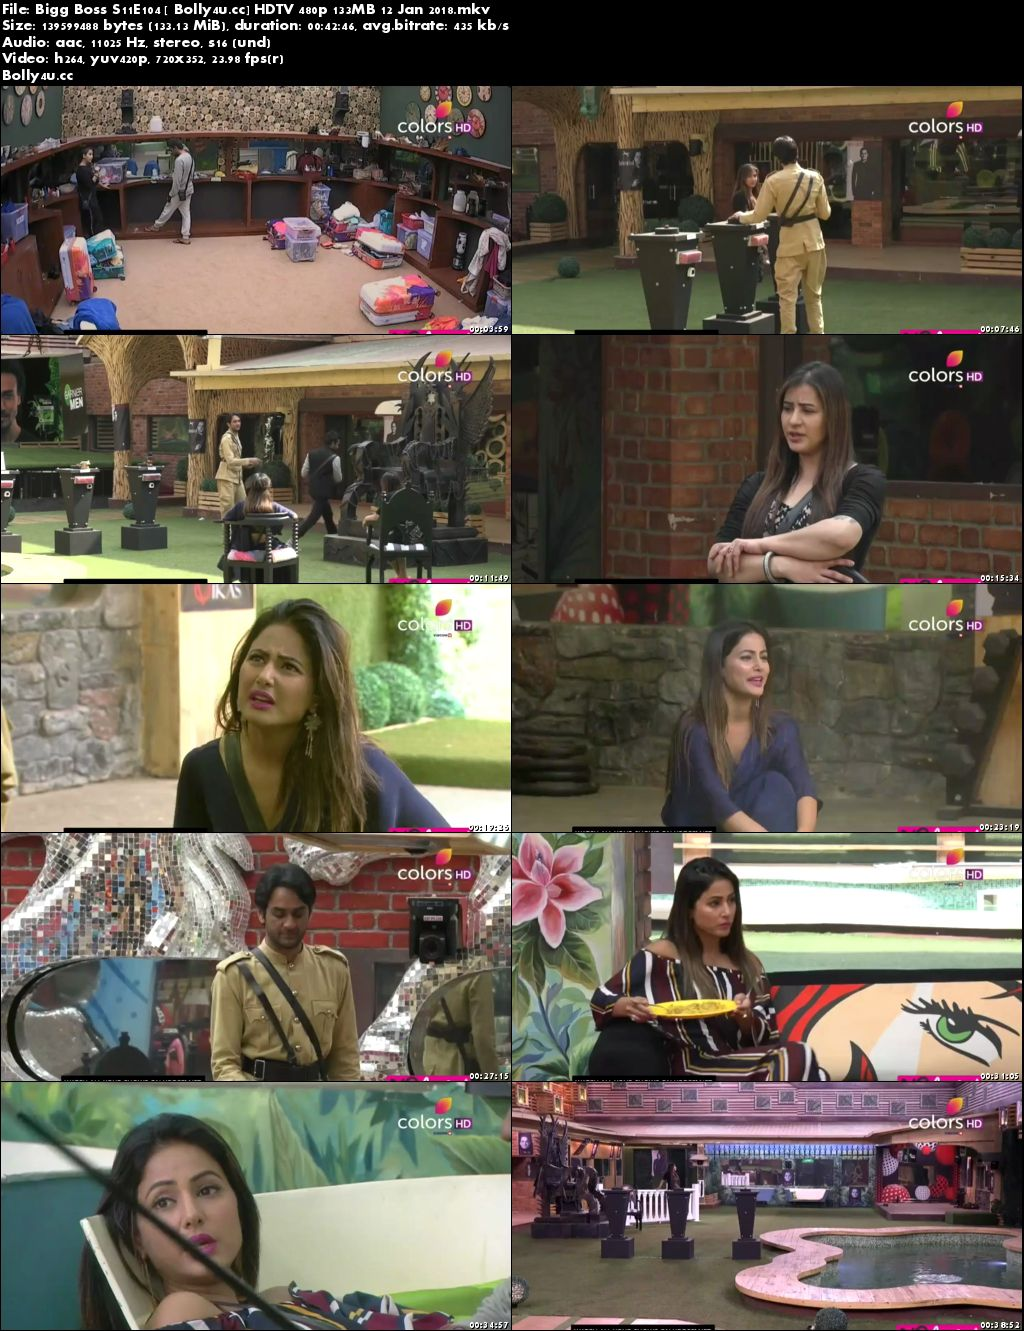 Bigg Boss S11E104 HDTV 480p 130MB 12 January 2018 Download